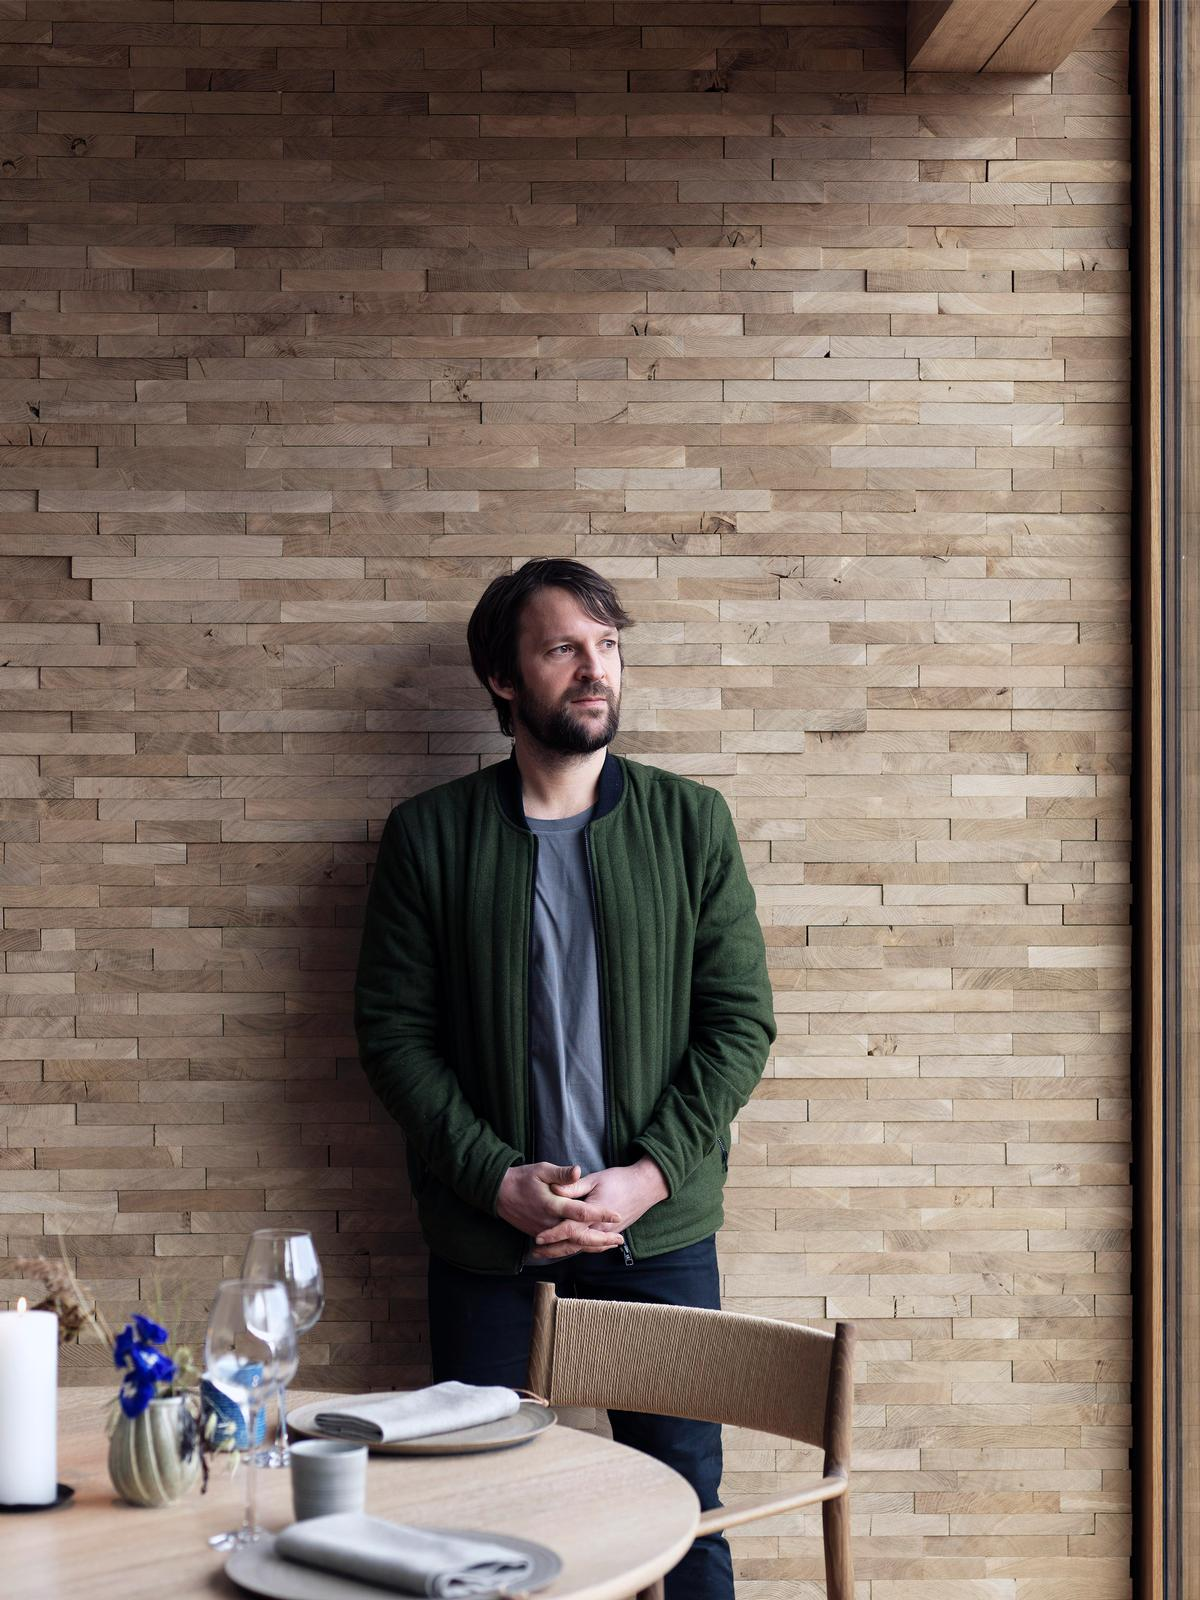 Opened by chef René Redzepi in 2003, noma is known for its twist on traditional Nordic Cuisine / Jason Loucas